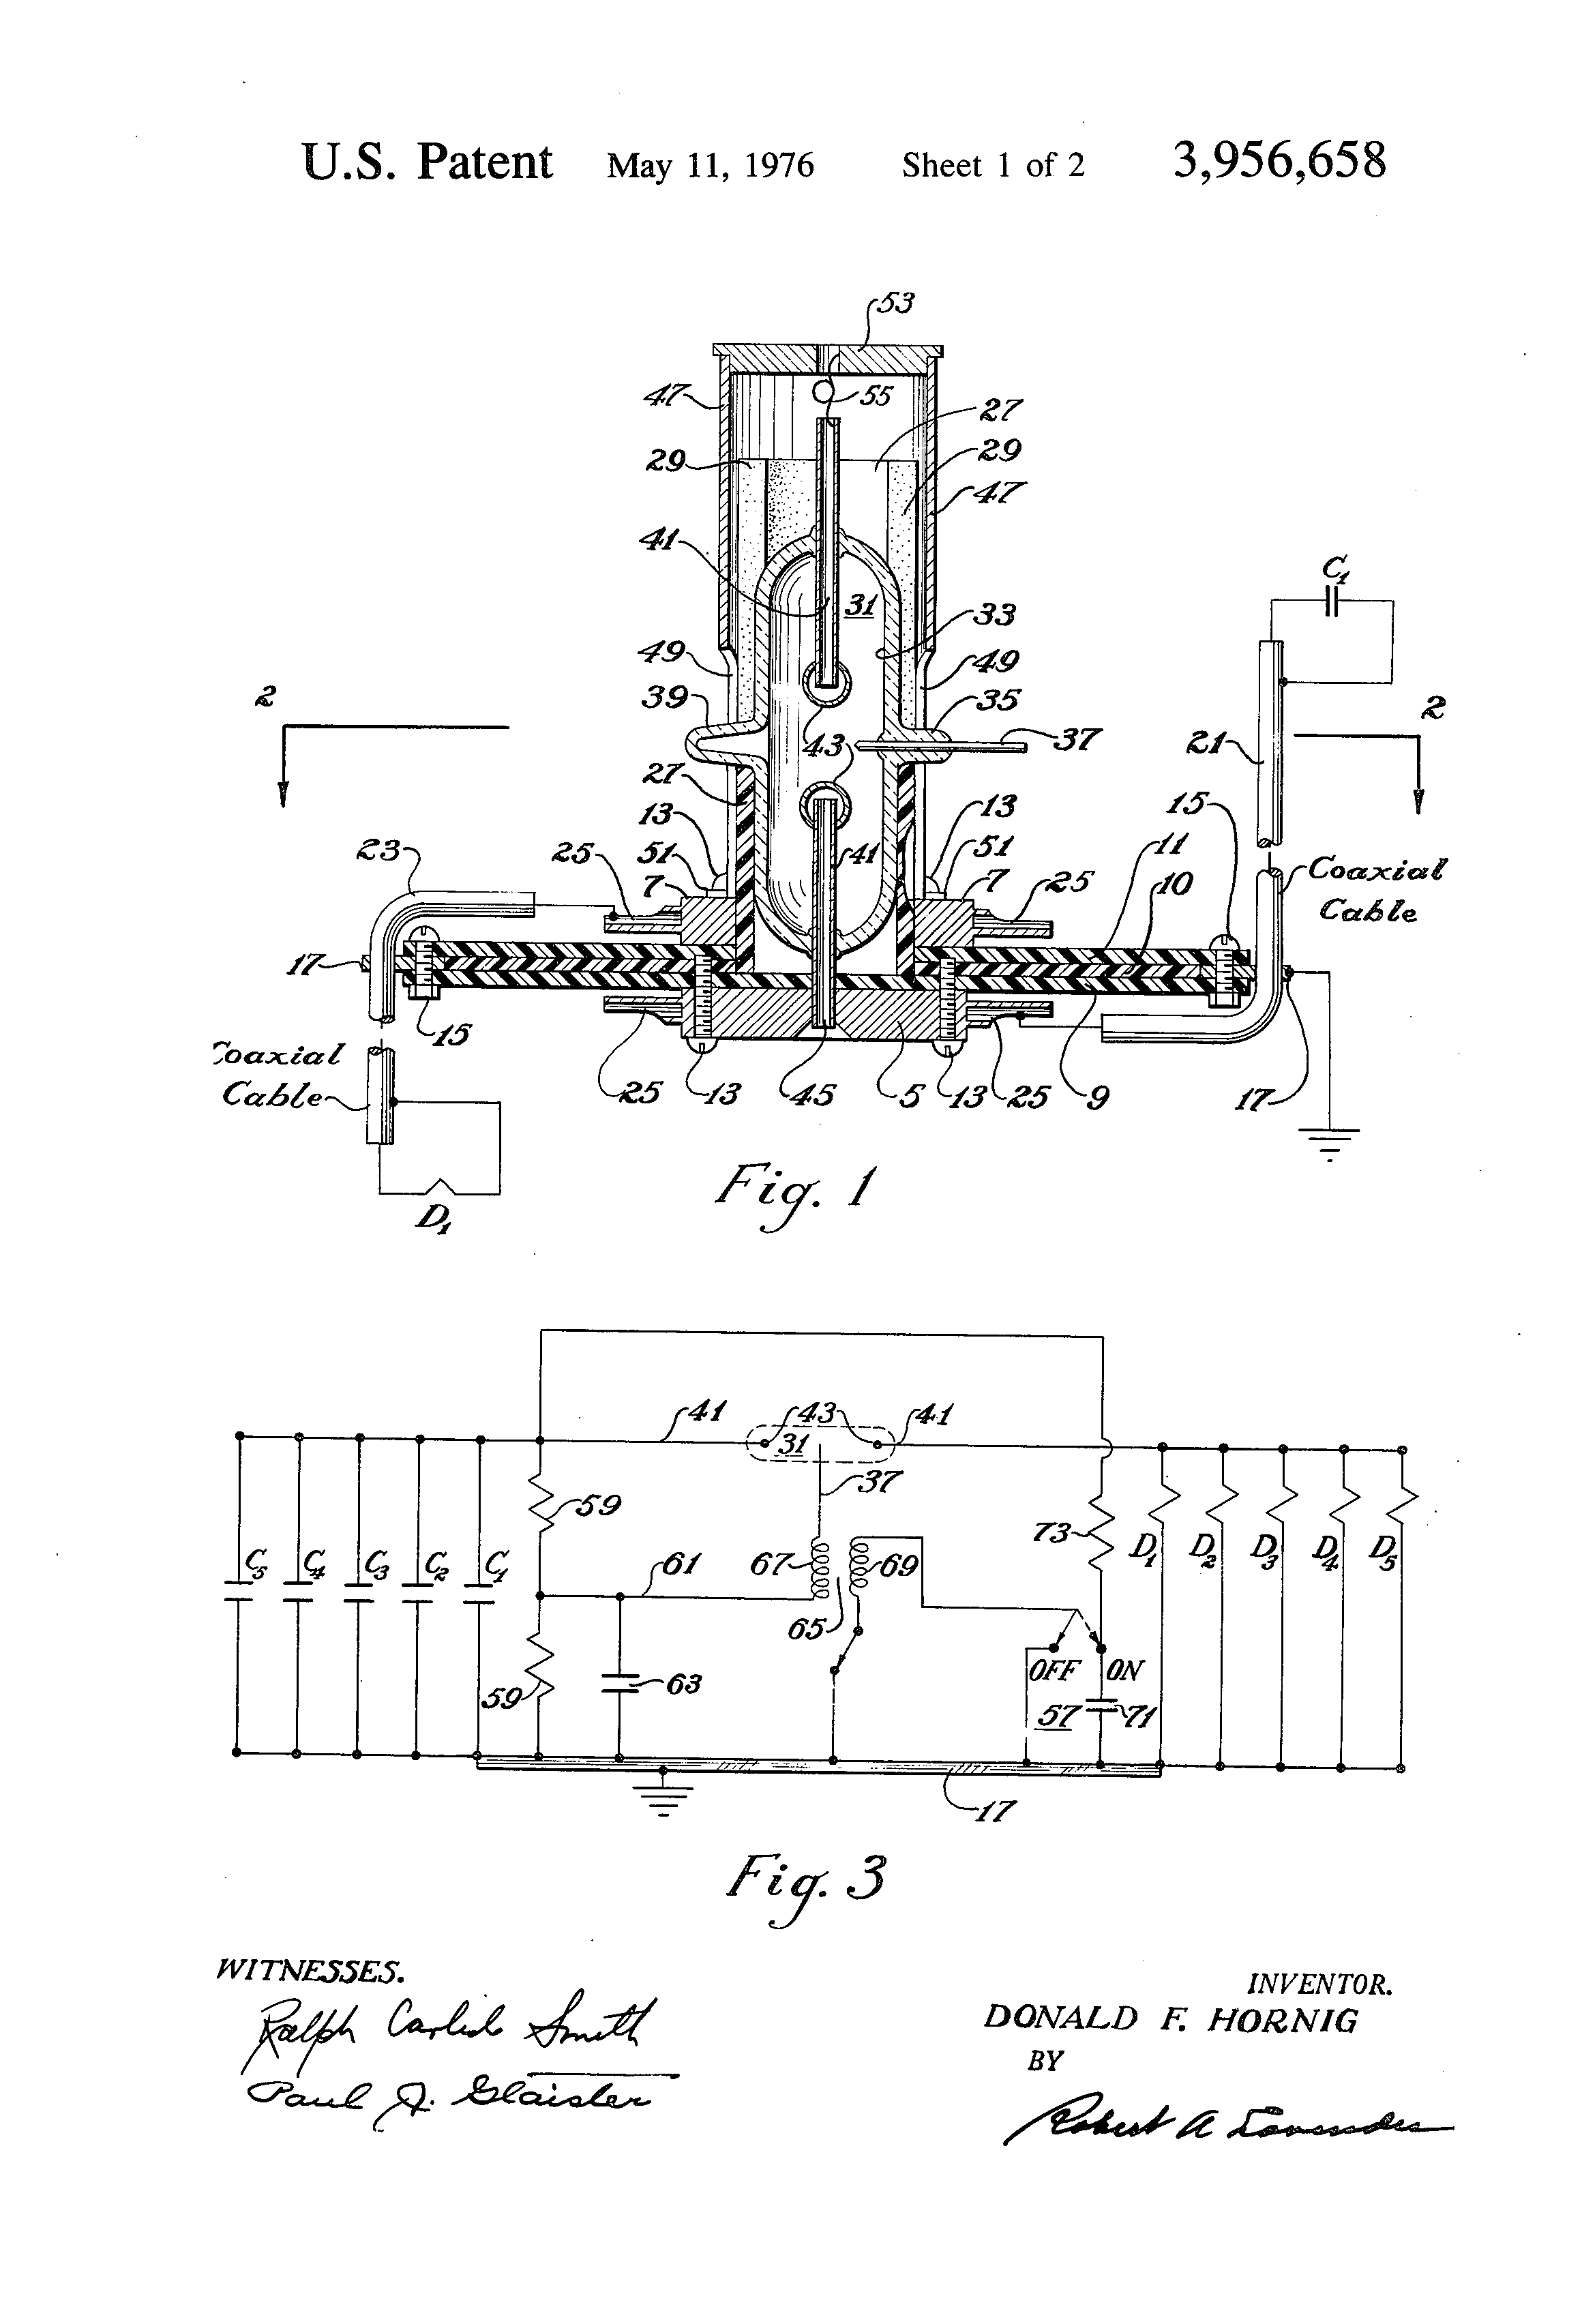 Donald Hornig's Spark-Gap Switch Patent (US 3956658 A). Image Courtesy of Google Patents and the U.S. Patent Office (https://www.google.com/patents/US3956658?dq=3,956,658).